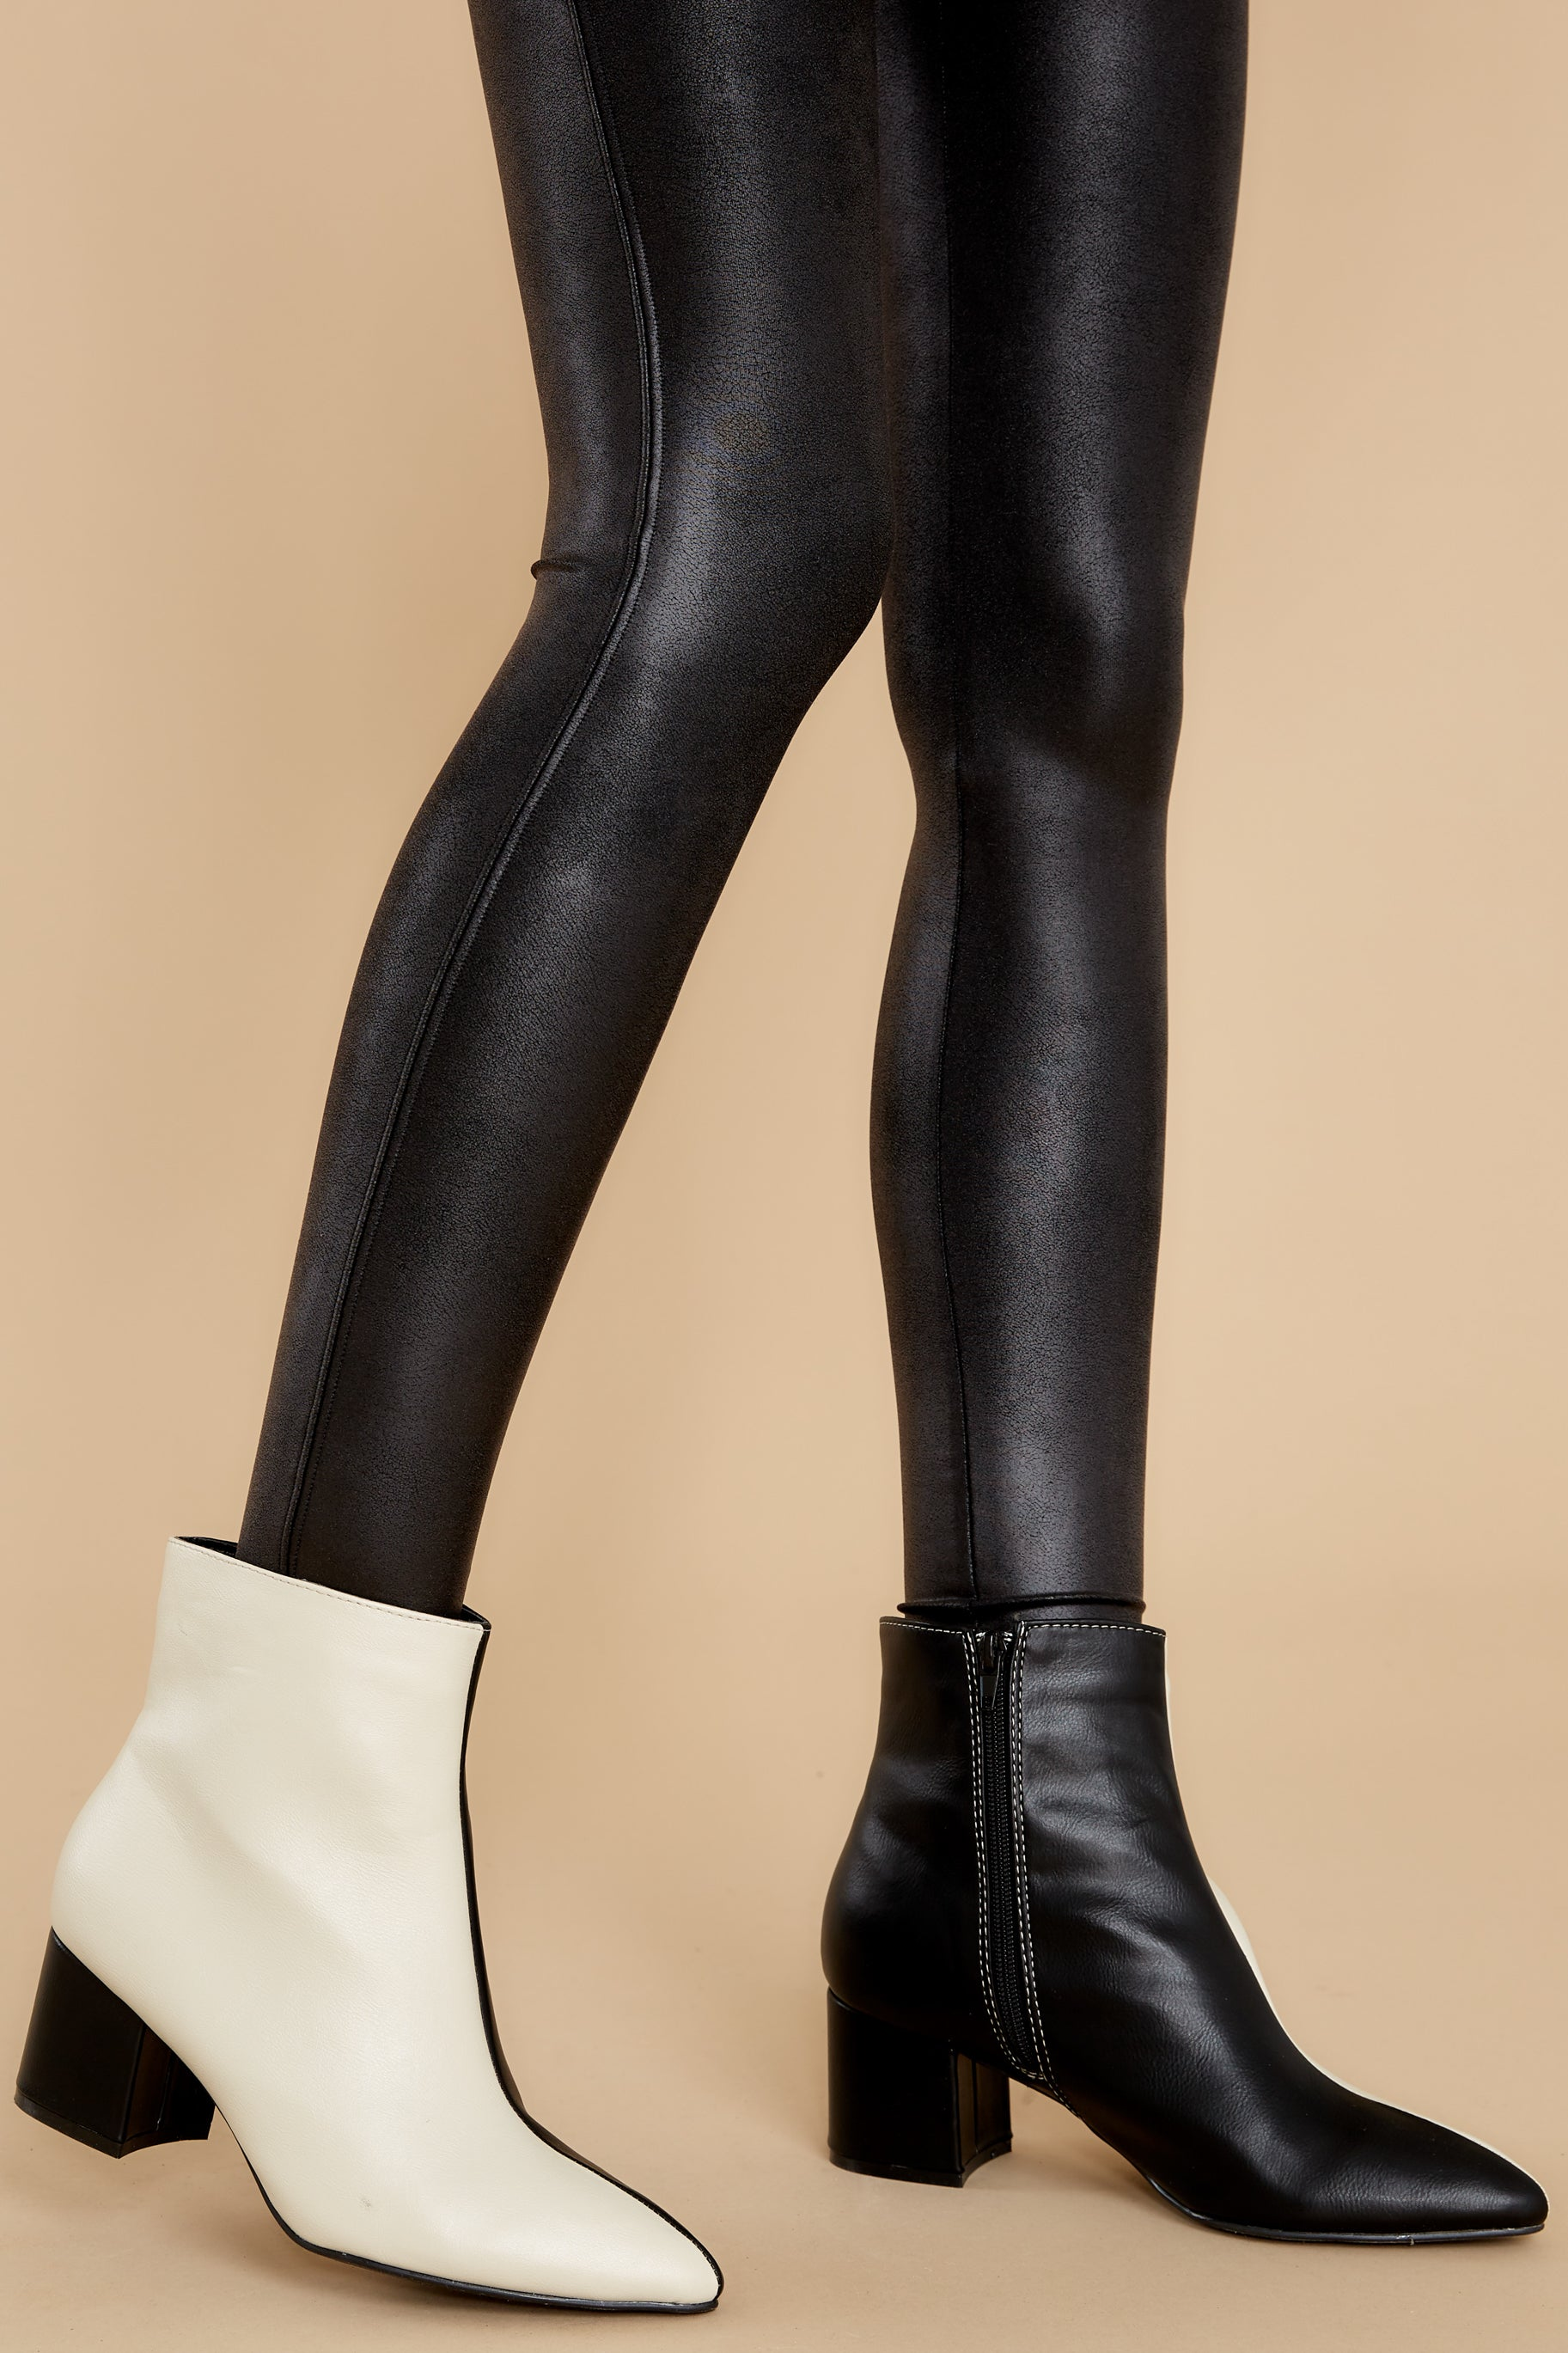 1 Split Decision Ivory And Black Ankle Booties at reddress.com